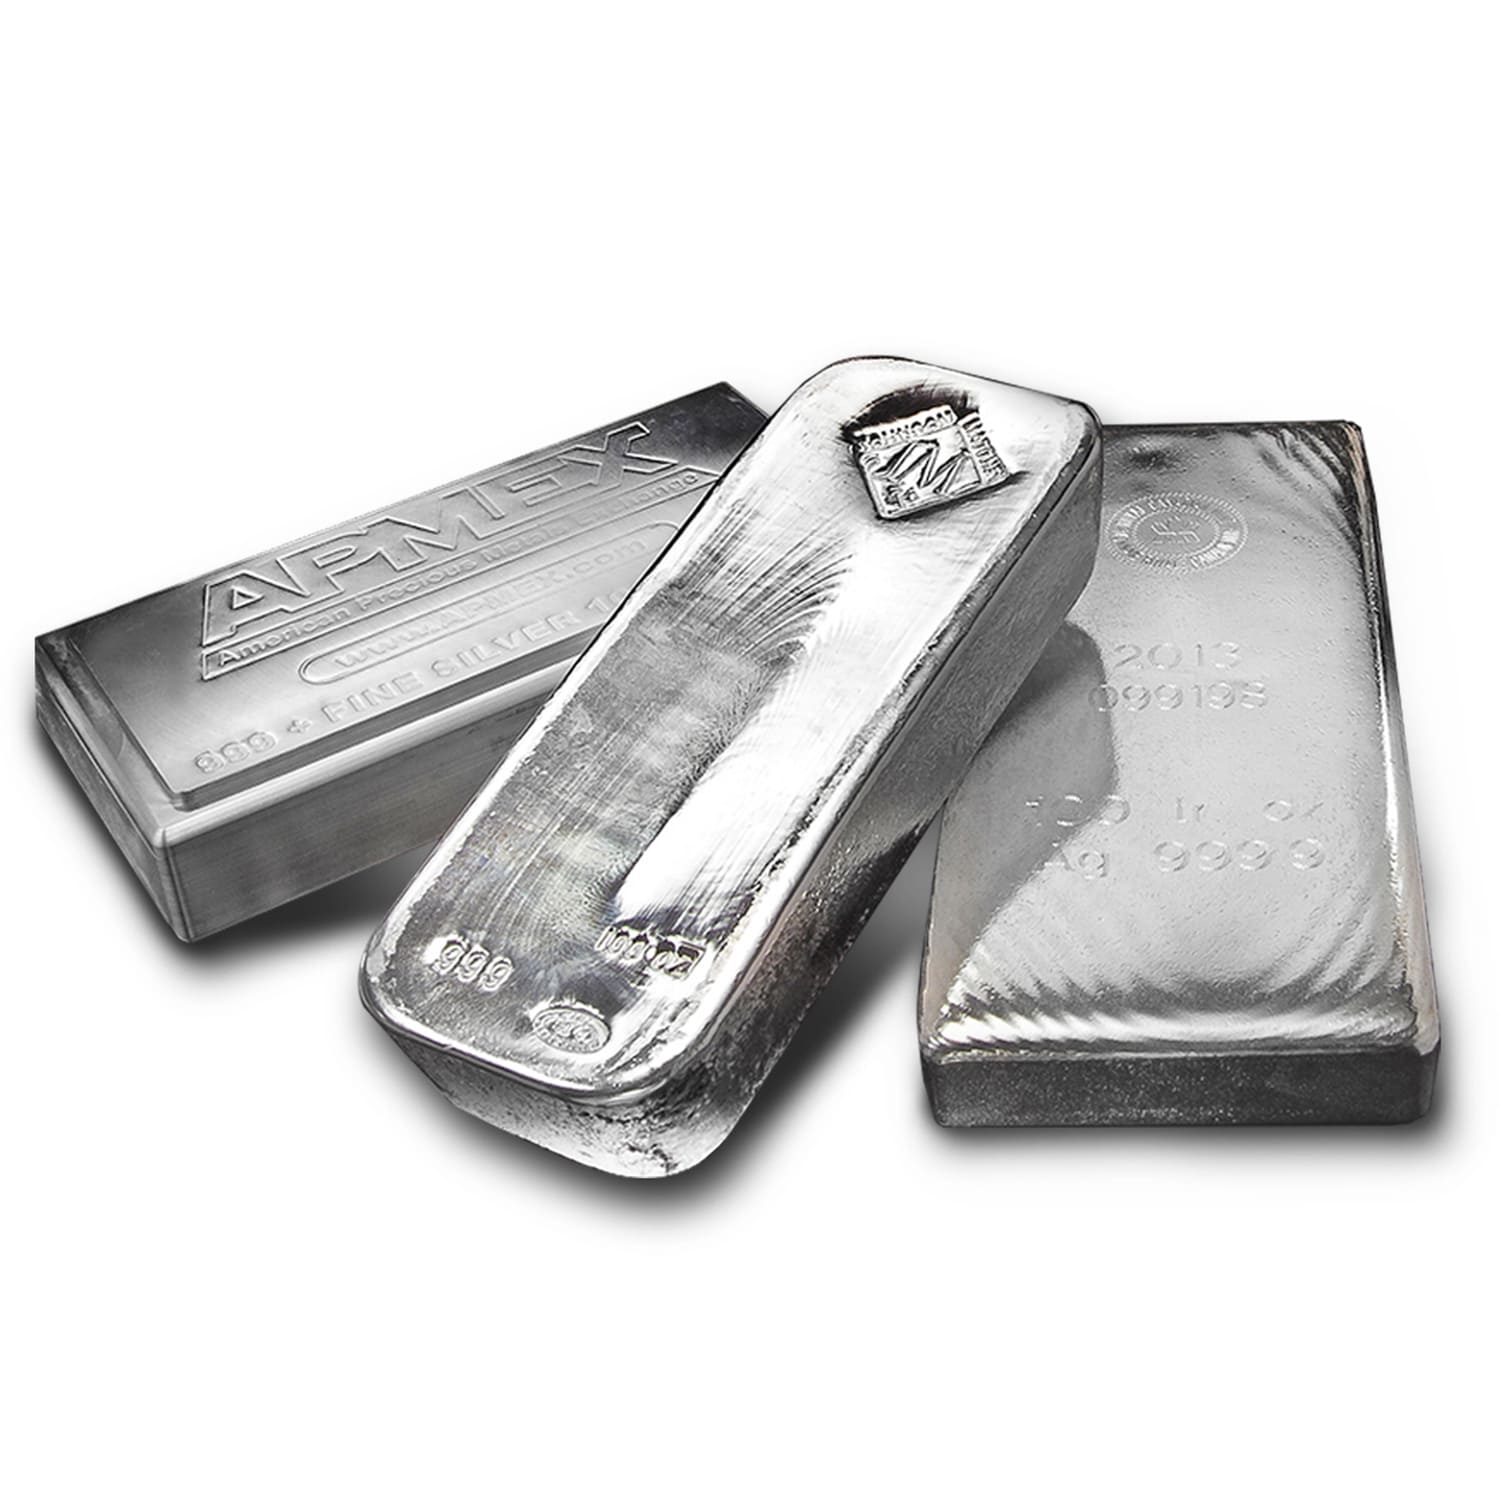 98.80 oz Silver Bars - Secondary Market